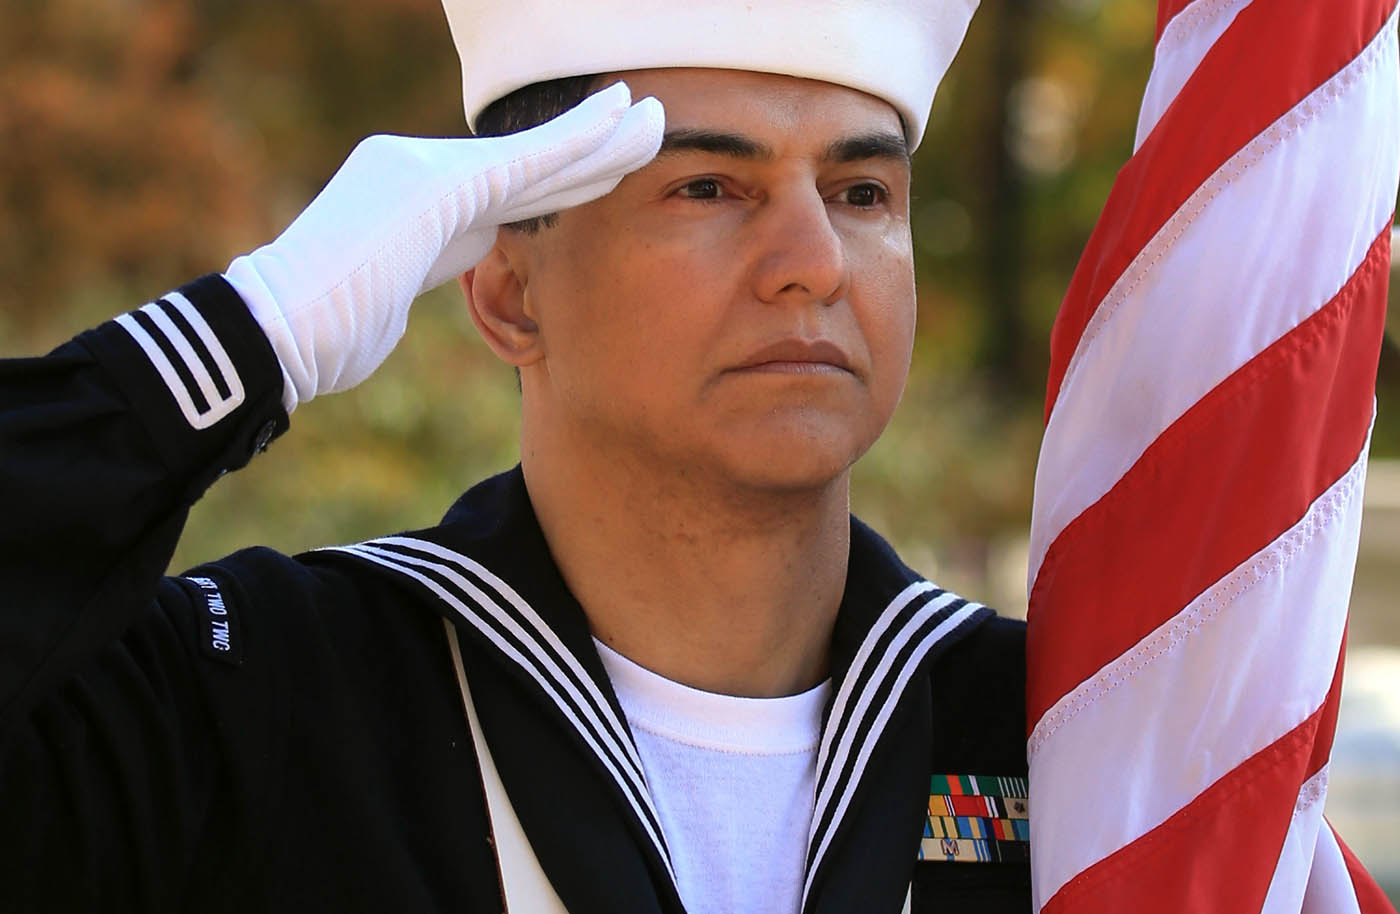 Petty Officer 2nd Class Miguel Reys a U.S. Navy Reservist and member of the color guard salutes during the national anthem at a Veterans day parade celebration at Niasgara Square in Buffalo, N.Y. on Saturday, Nov. 5, 2016. (John Hickey/Buffalo News)